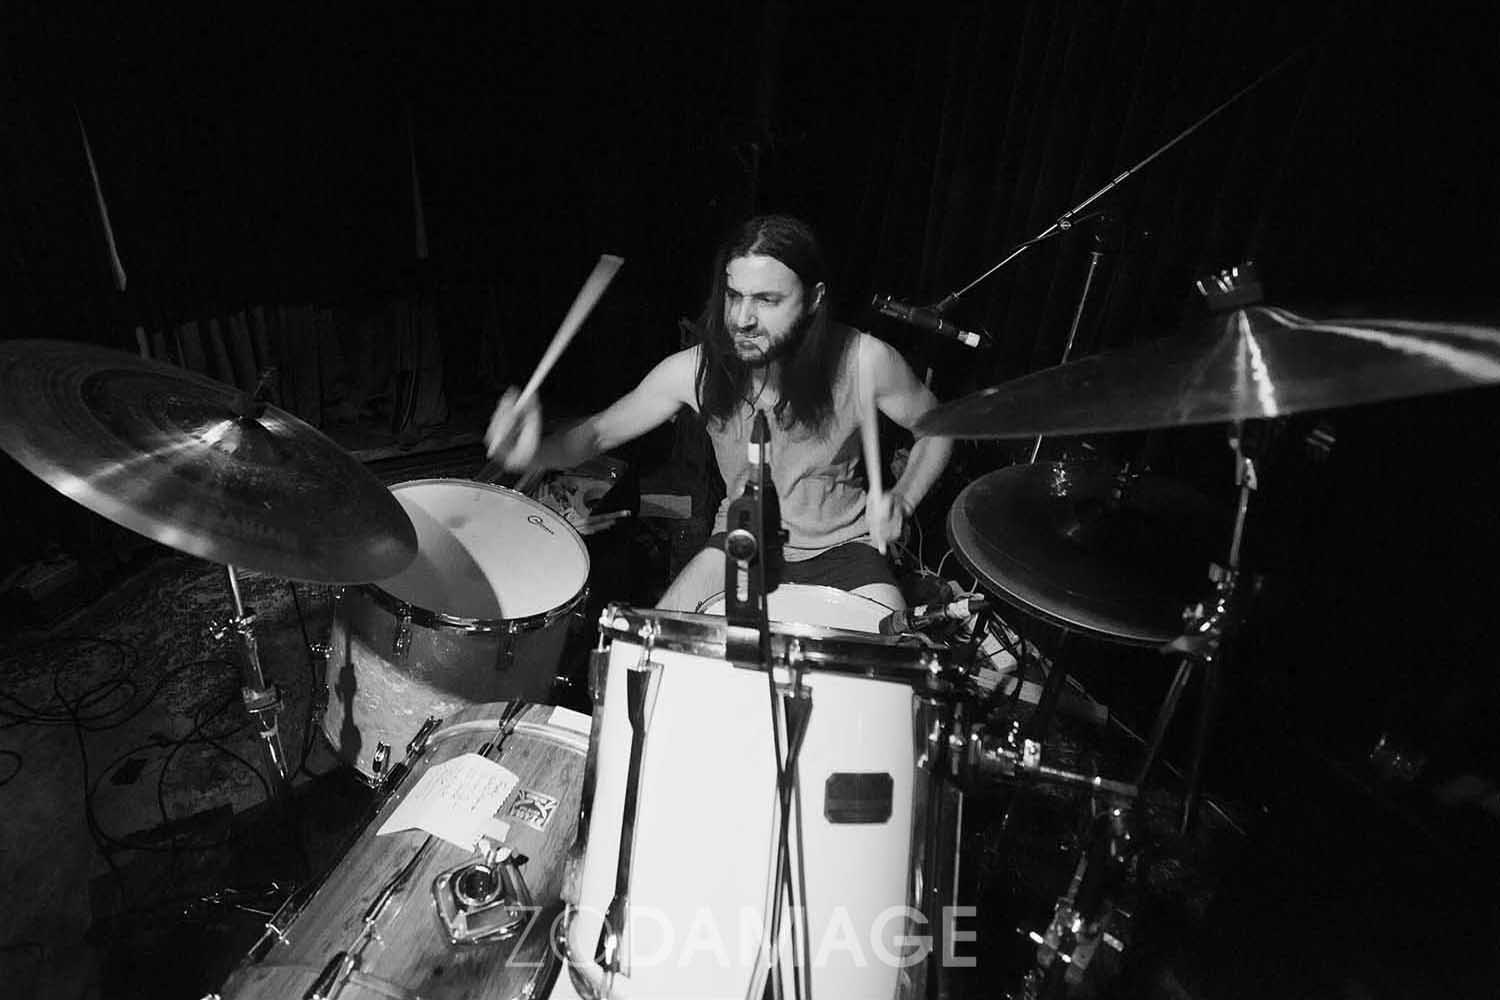 DEAD (band) (Jem), The Old Bar 2014